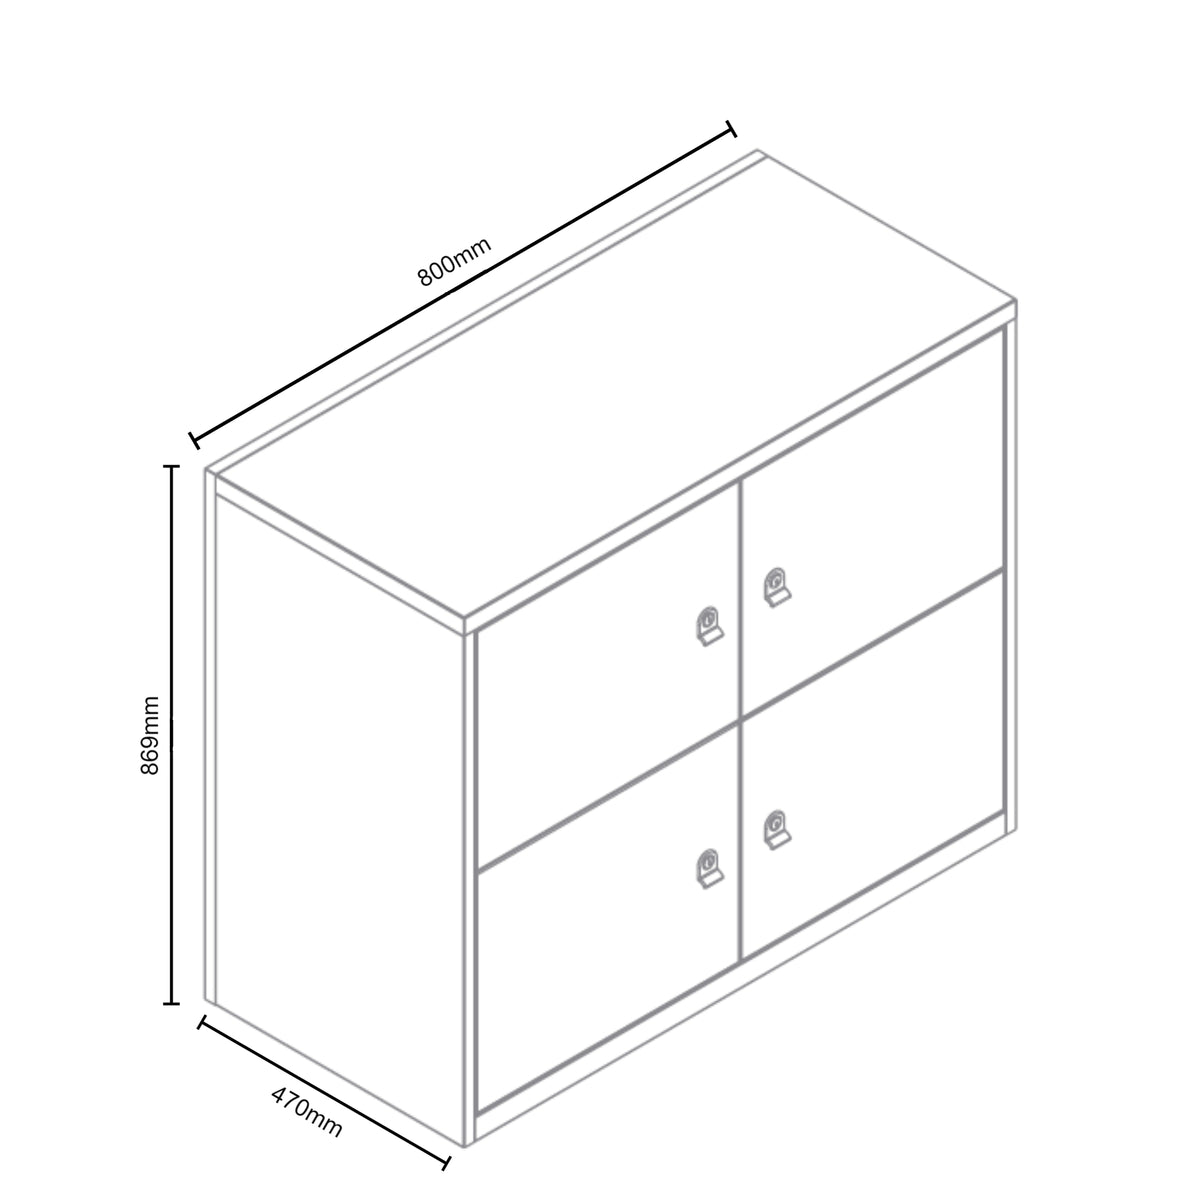 Dimensions for Bisley Metal Office Four Door LateralFile Locker